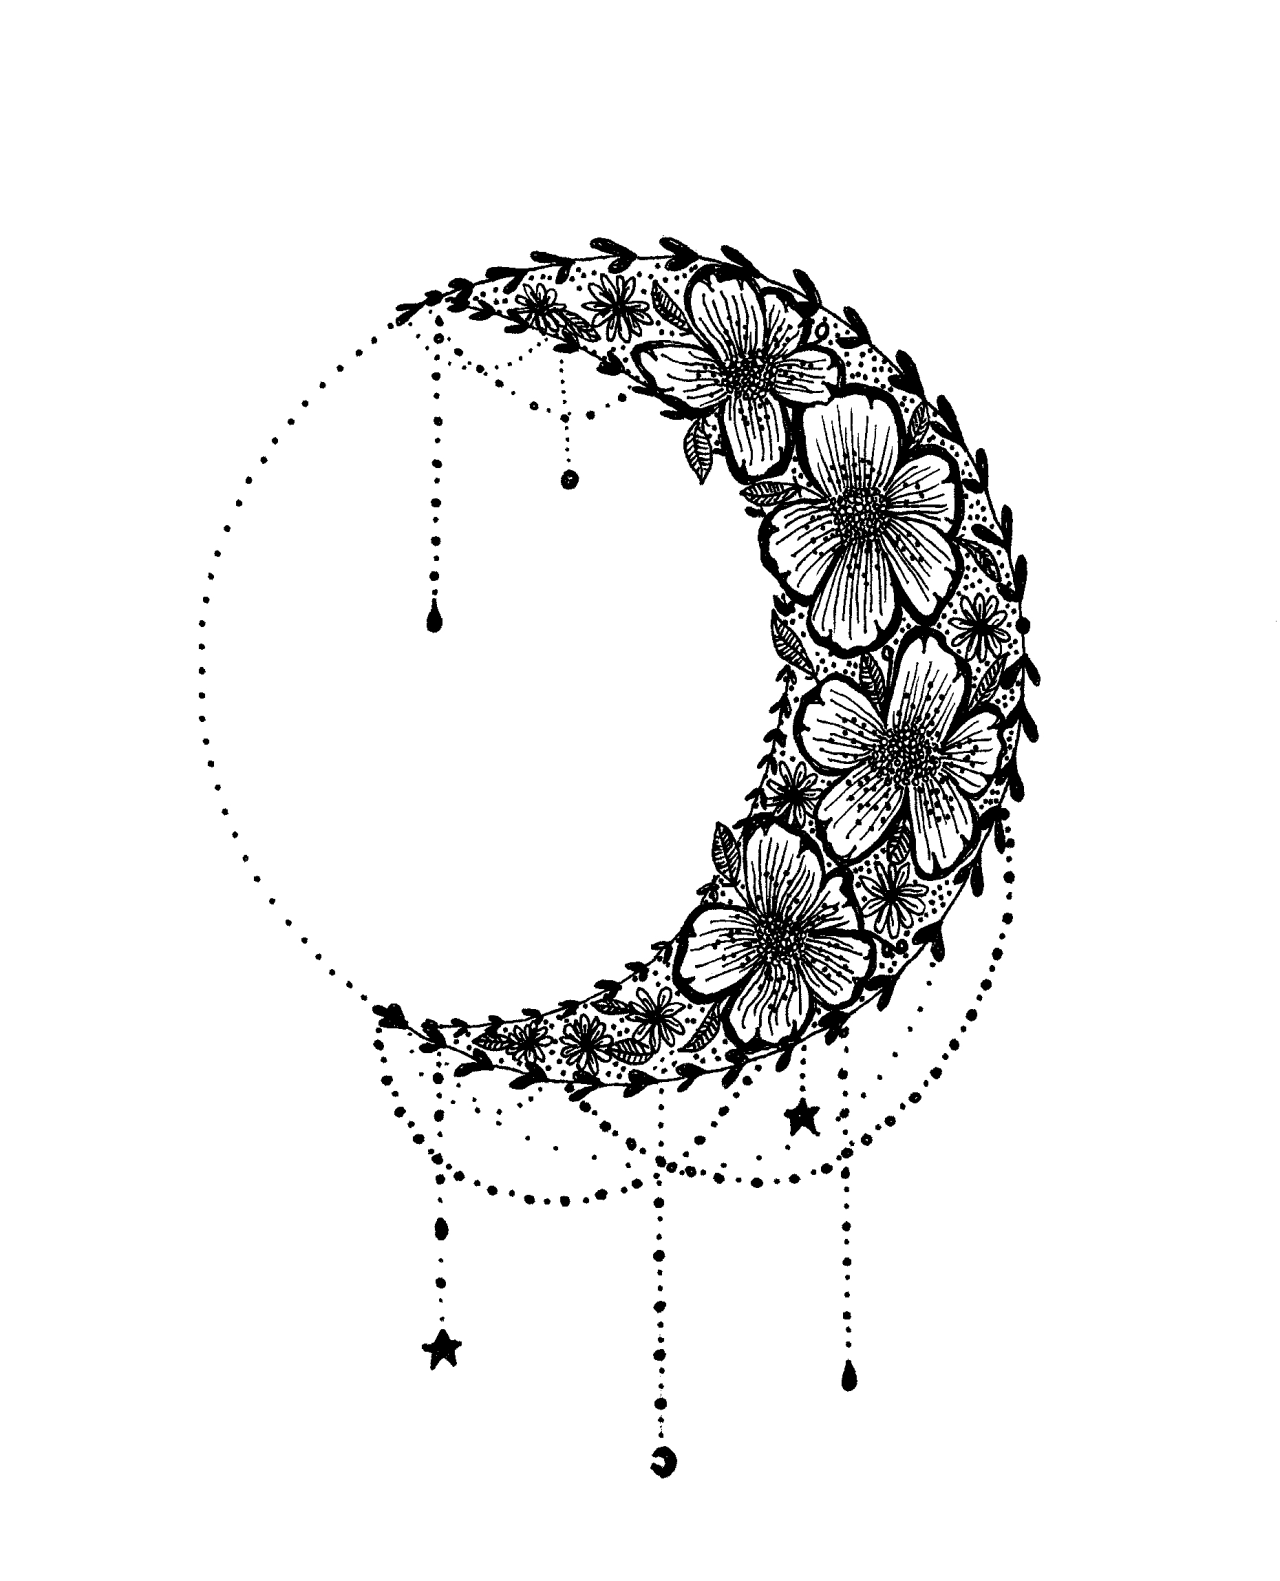 Floral Crescent Moon Design Star Tattoos Moon Tattoo Tattoos